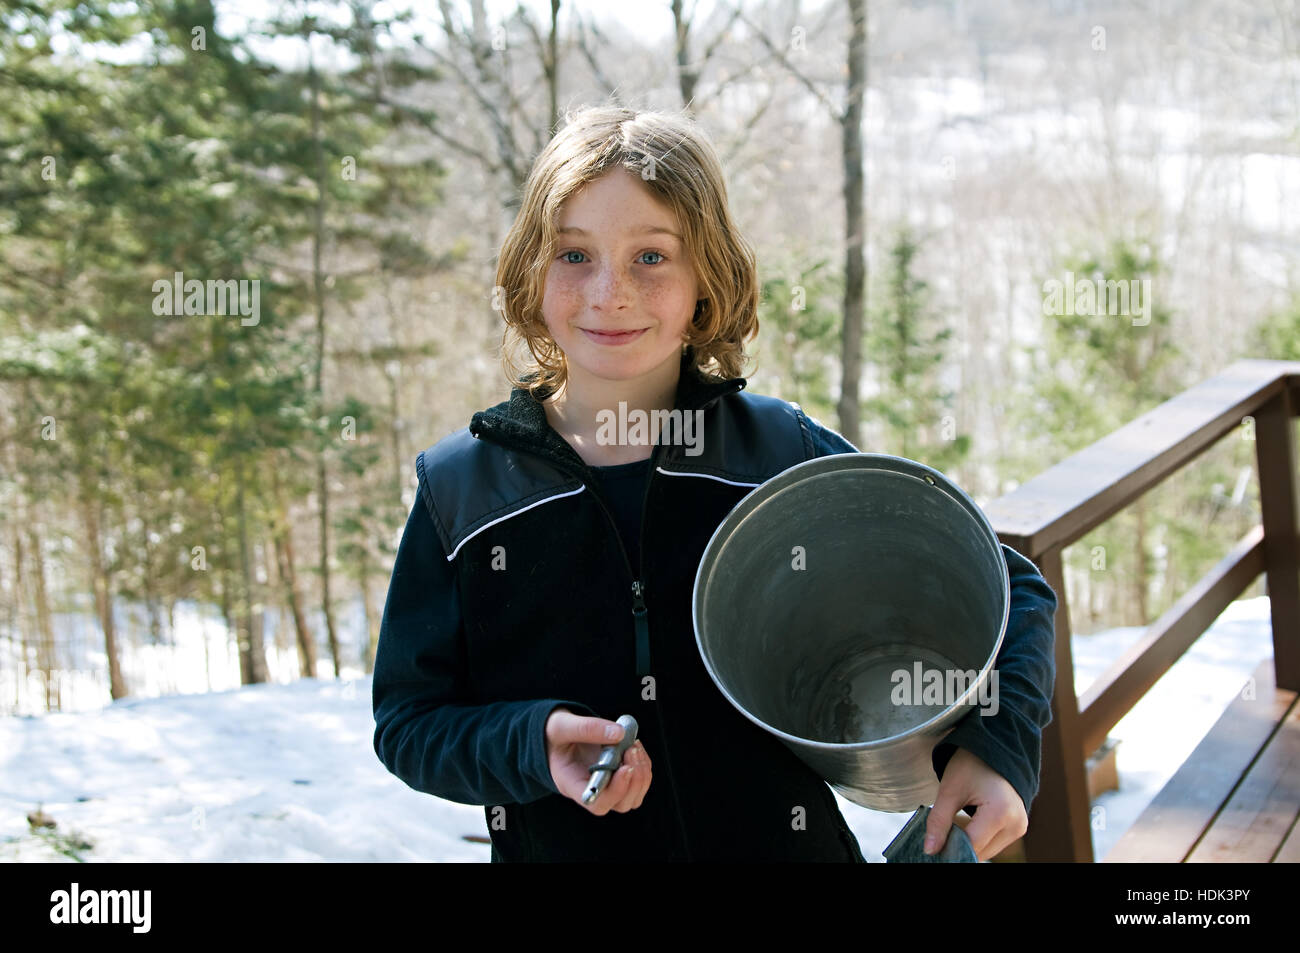 little girl holding a sap bucket and spigot to tap maple trees in the spring - Stock Image